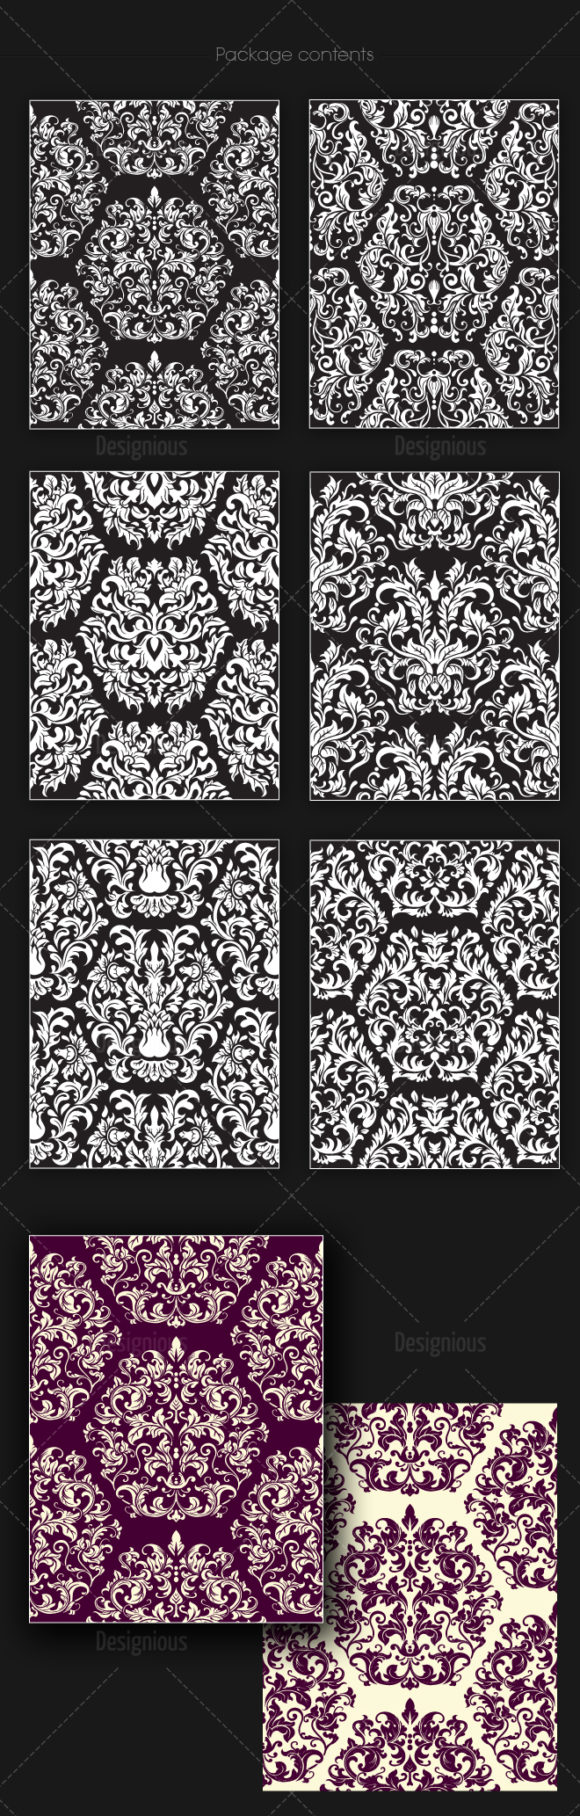 Seamless Patterns Vector Pack 148 6